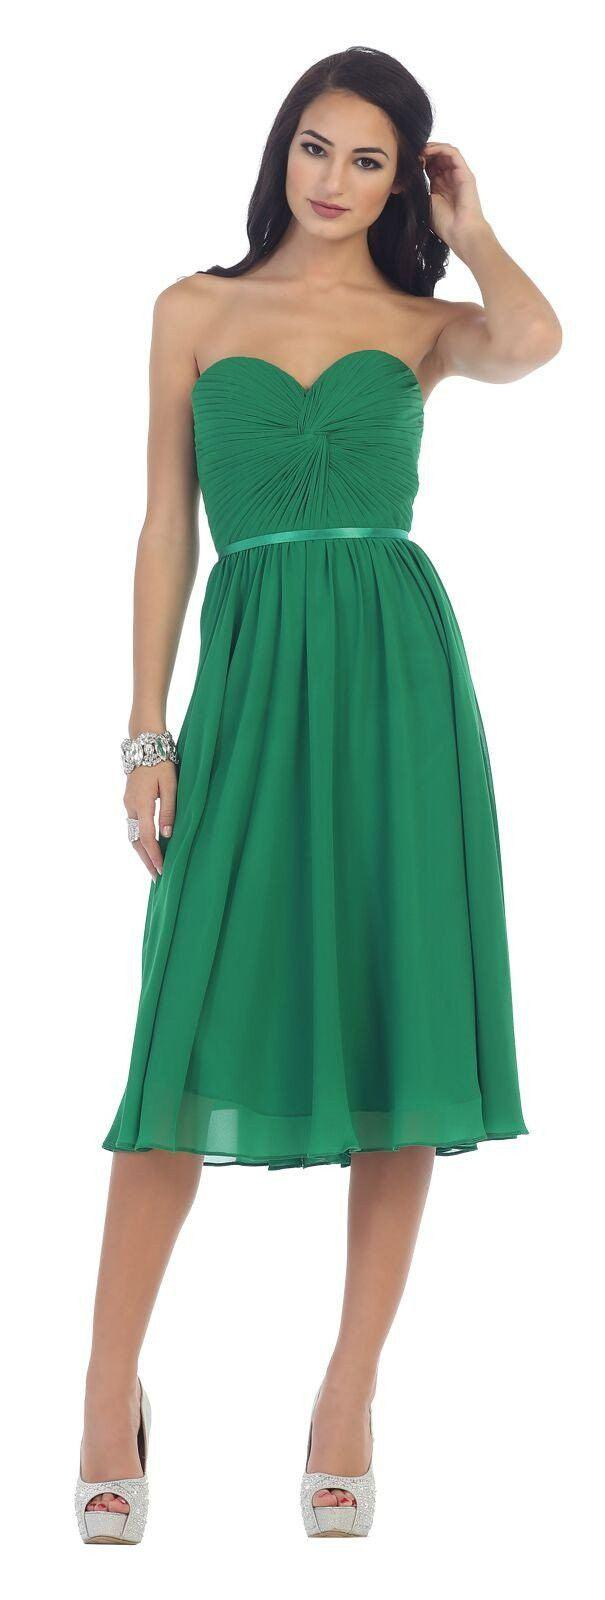 e7e914b8804fa ... Short Prom Dress Plus Size Formal Cocktail - The Dress Outlet Emerald  Green May Queen ...